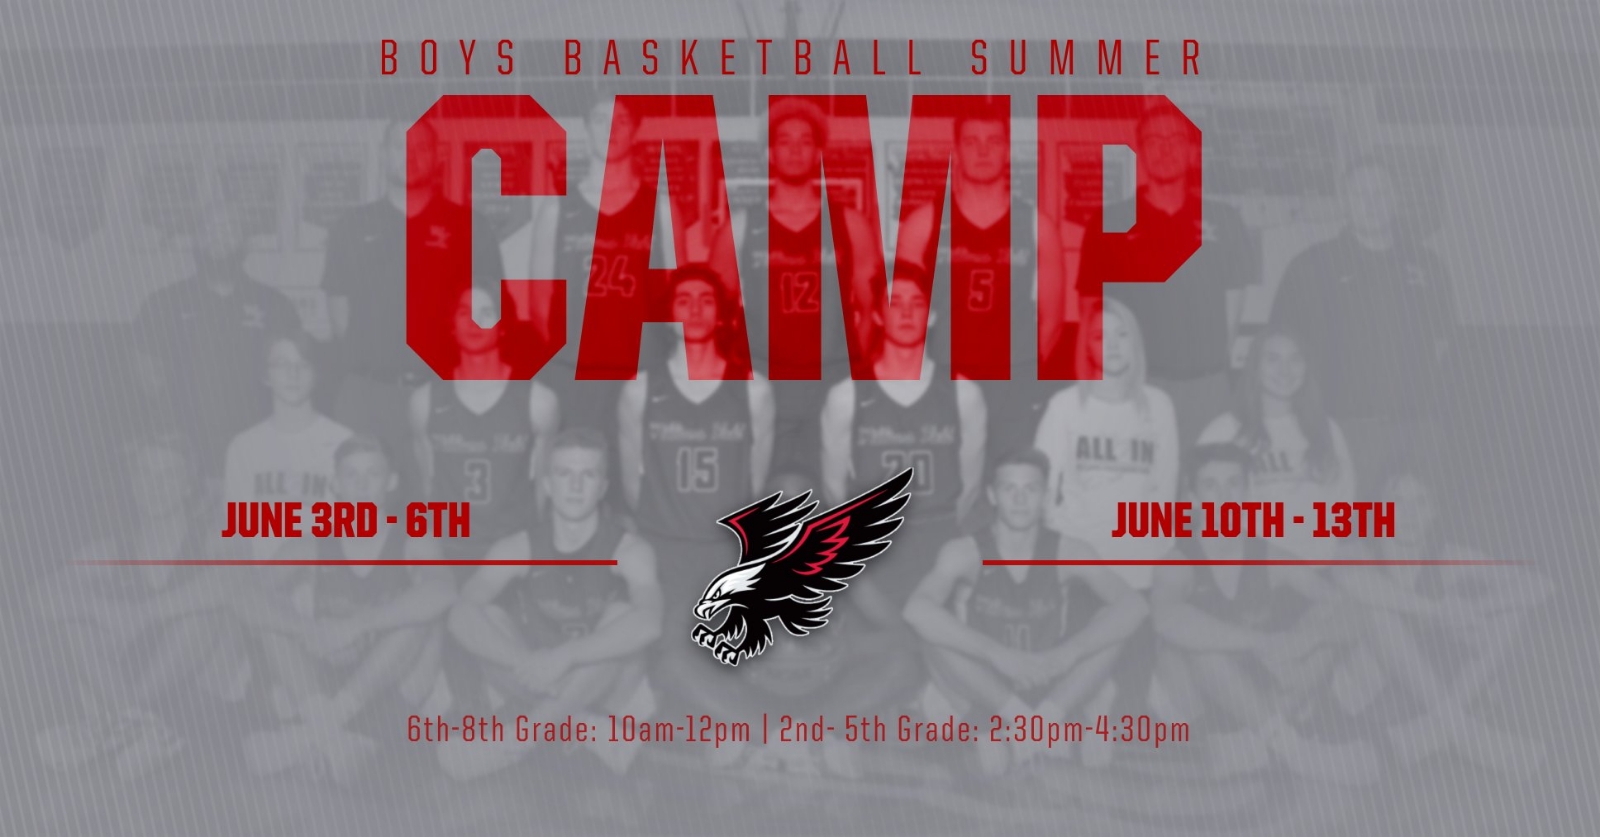 Boys Basketball Summer Camp 2019!